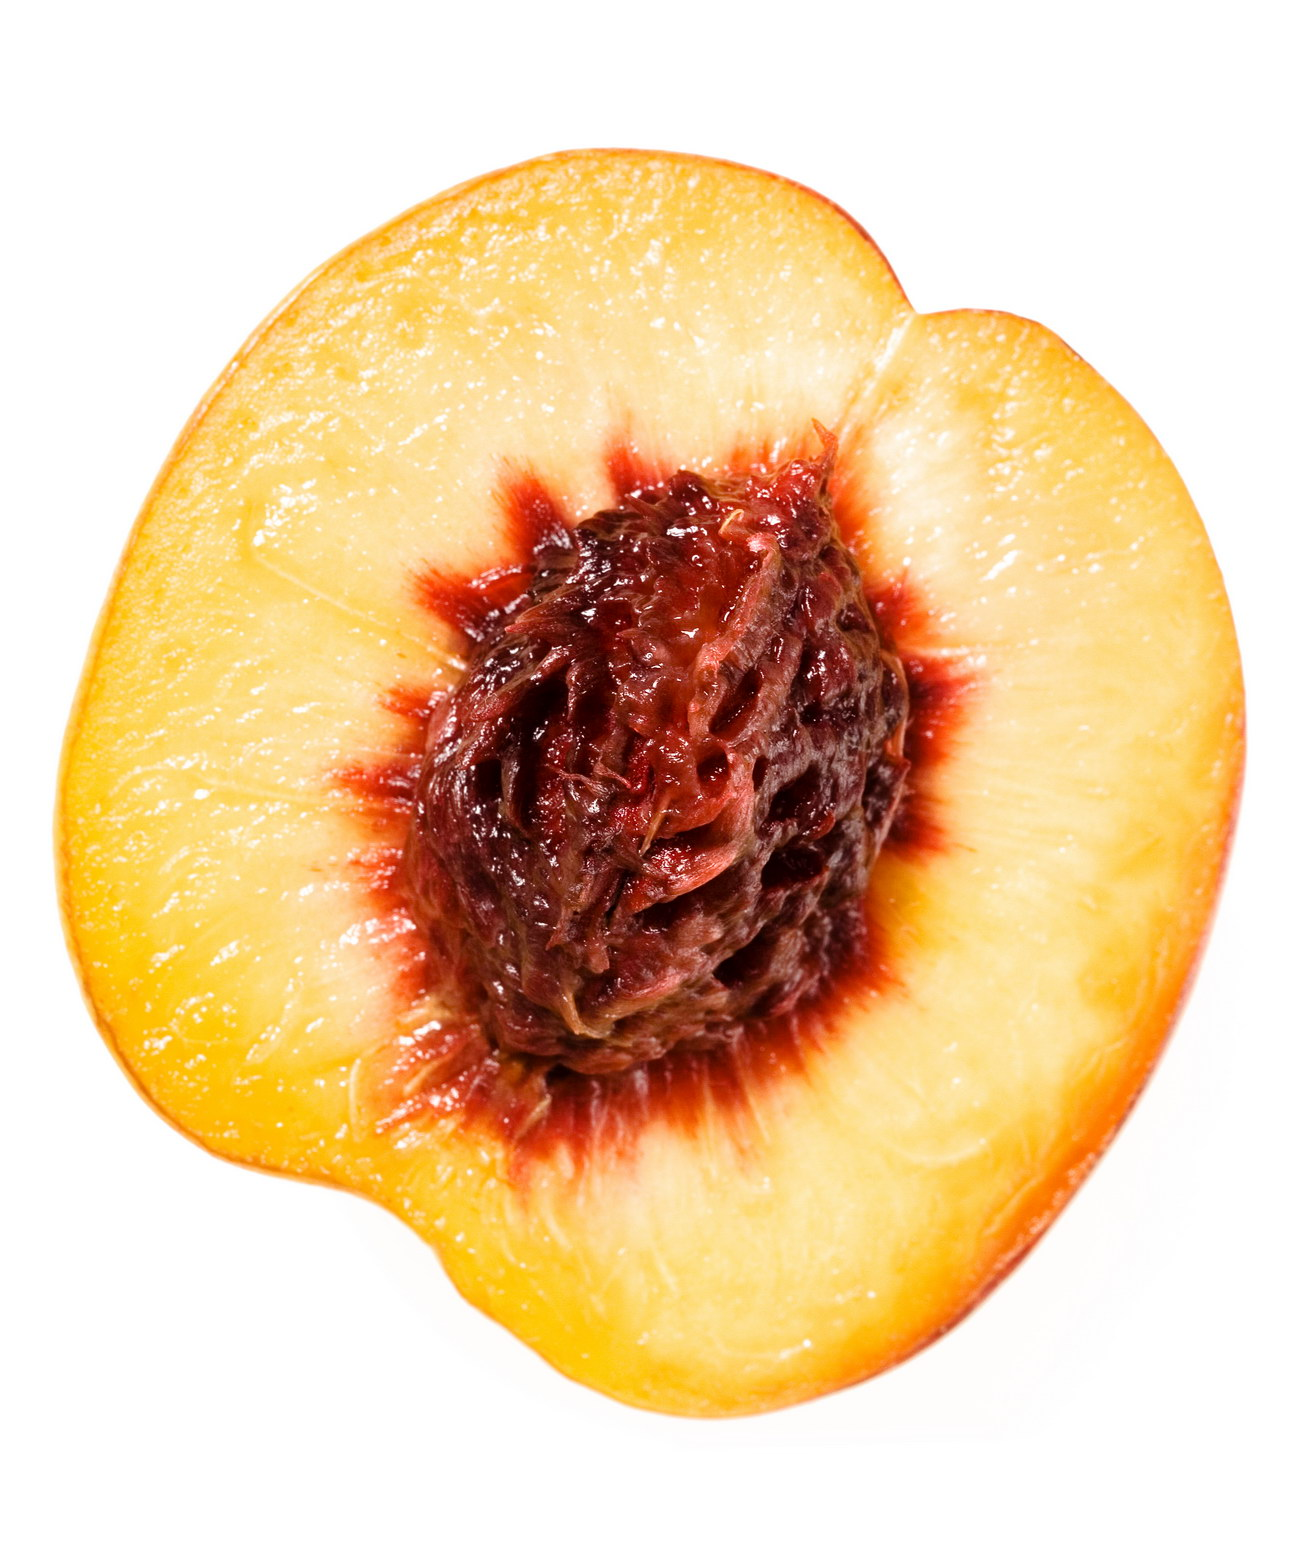 sliced peach, Yellow, Sliced, Raw, Red, HQ Photo